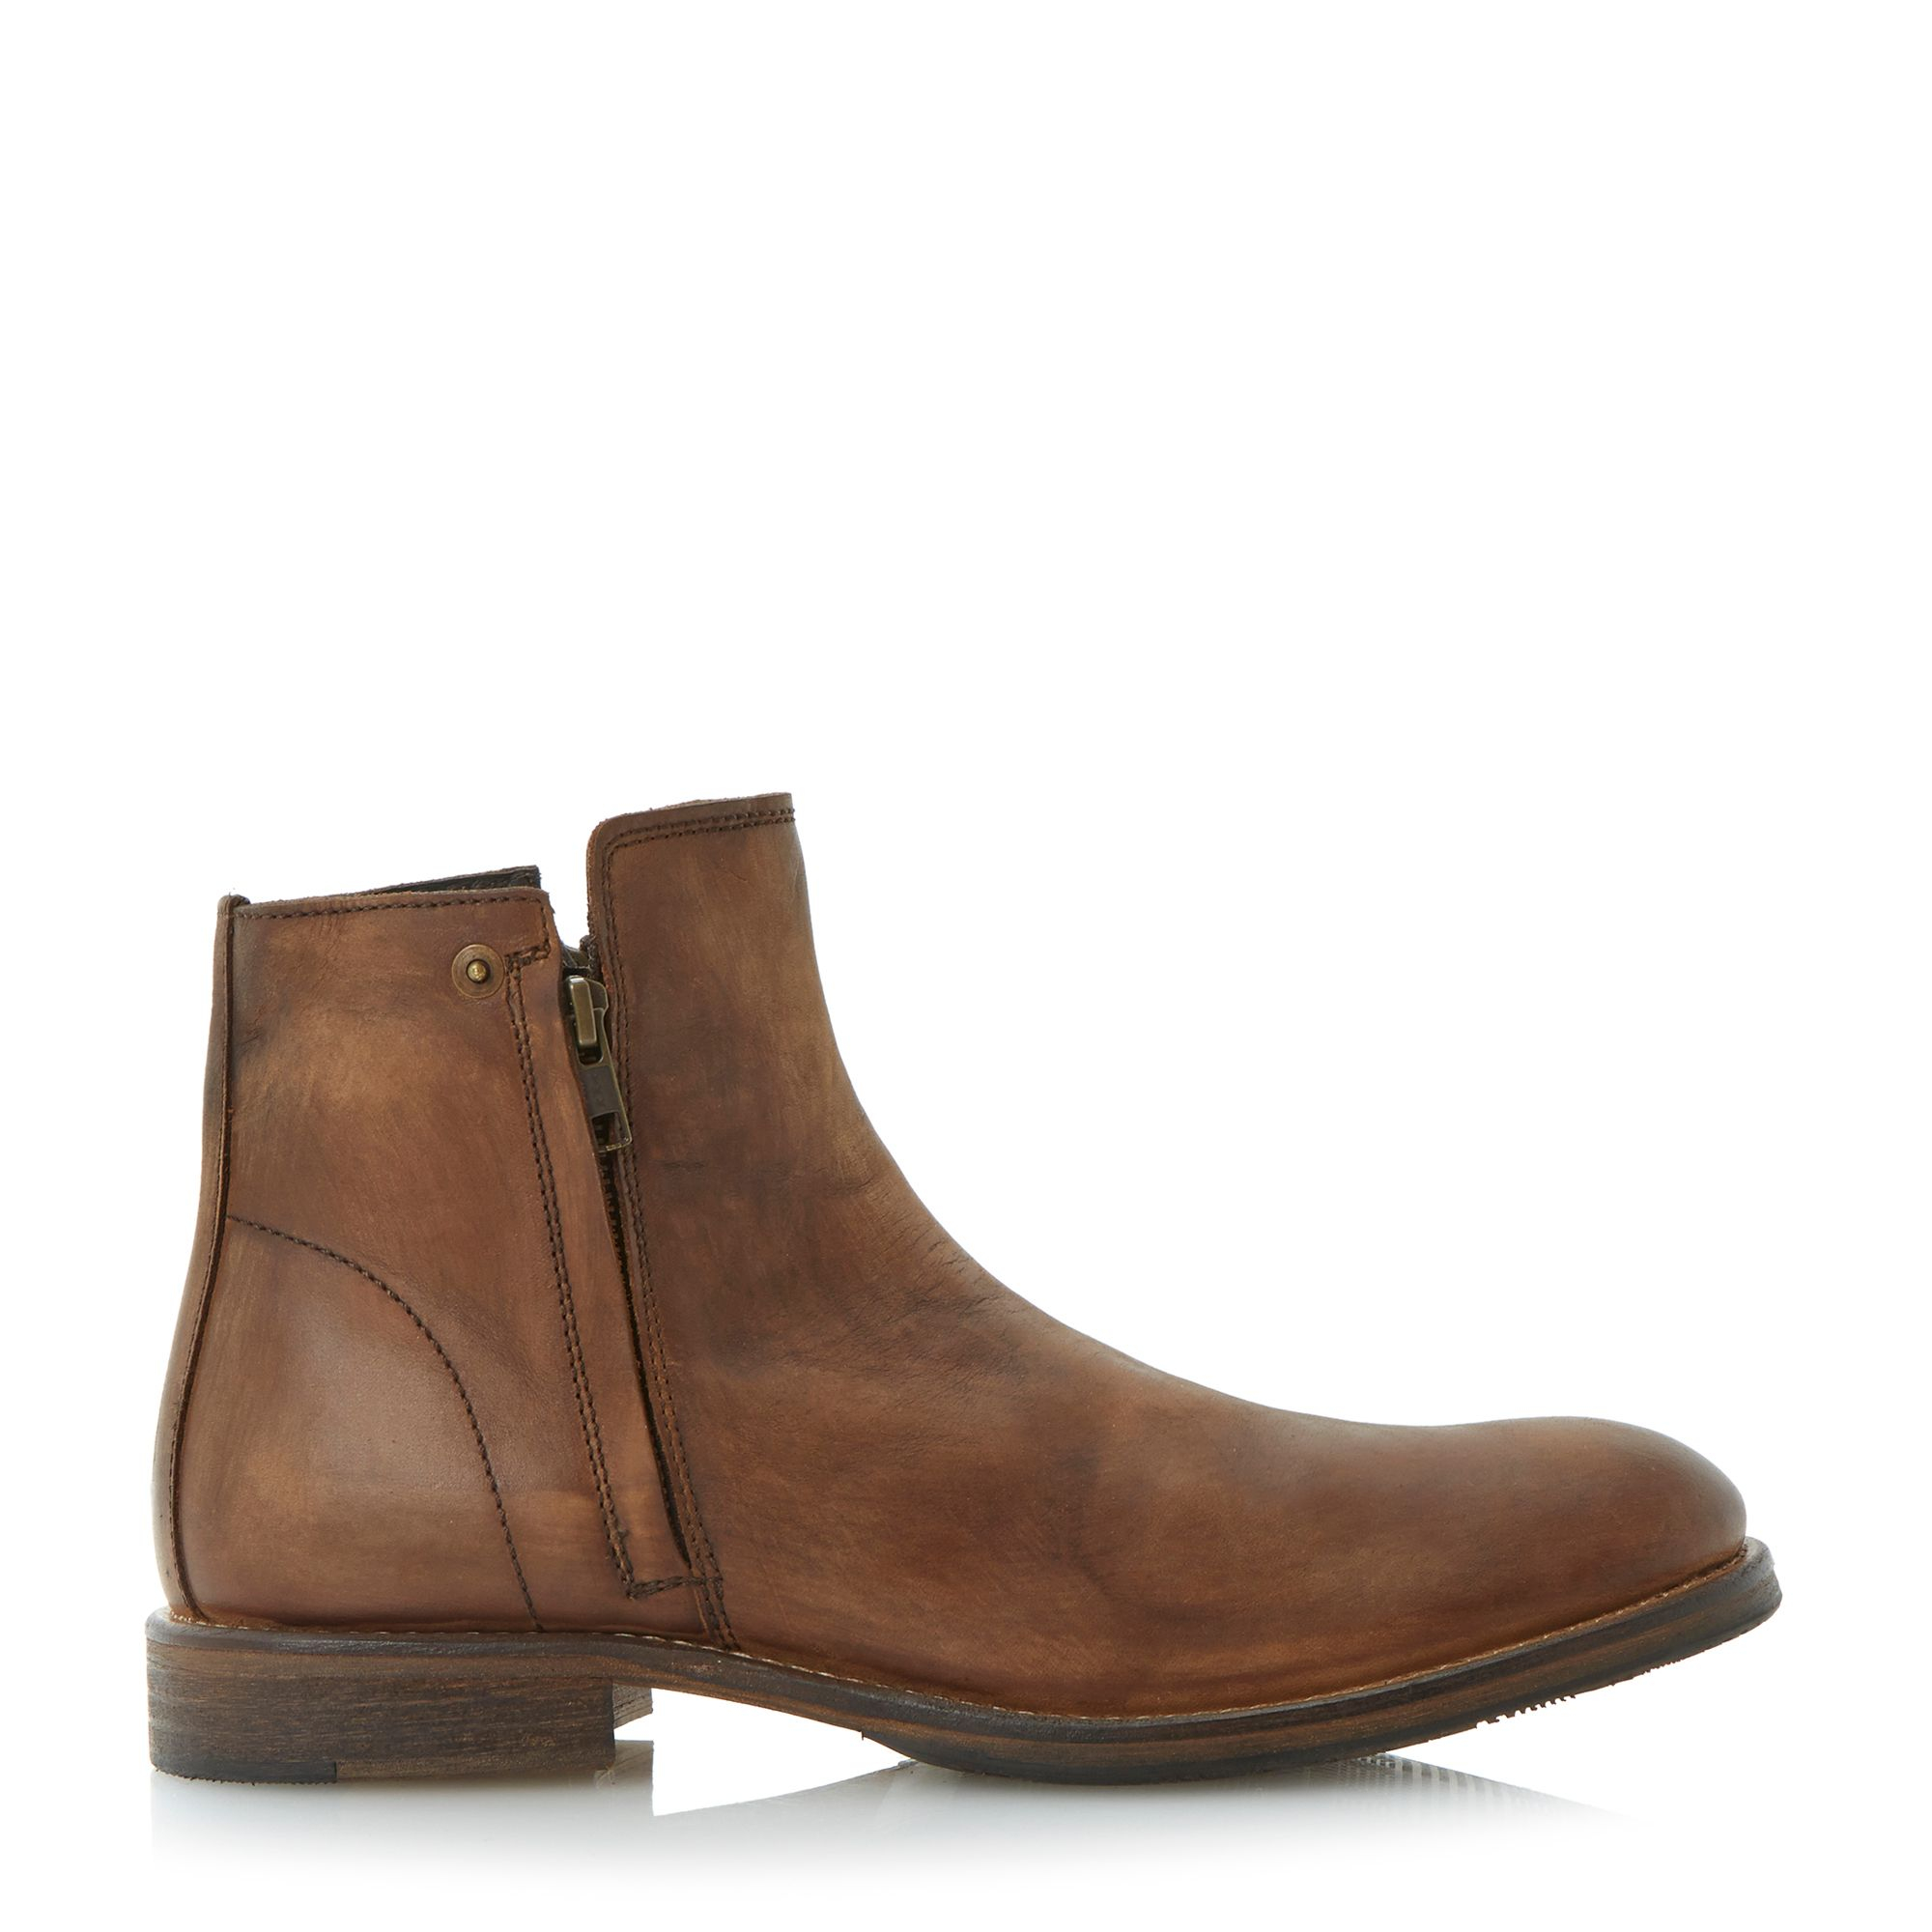 bertie cus doublezip washed look boots in brown for